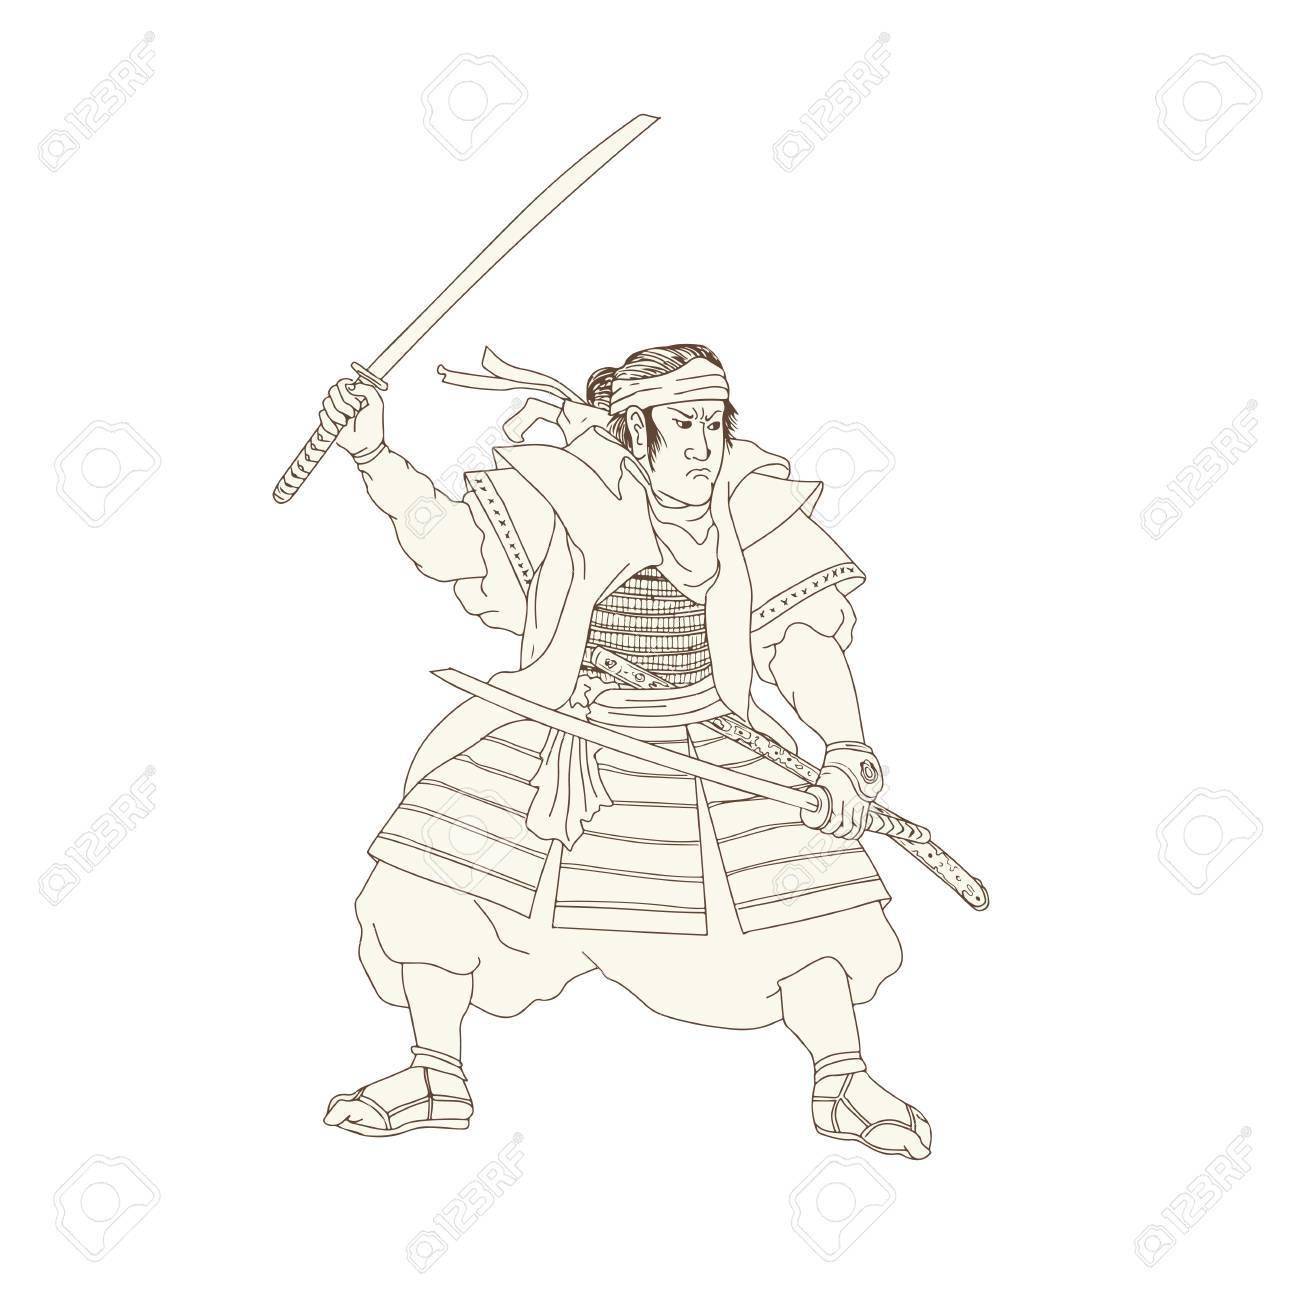 1300x1300 Woodblock Drawing Sketch Style Illustration Of Samurai Warrior